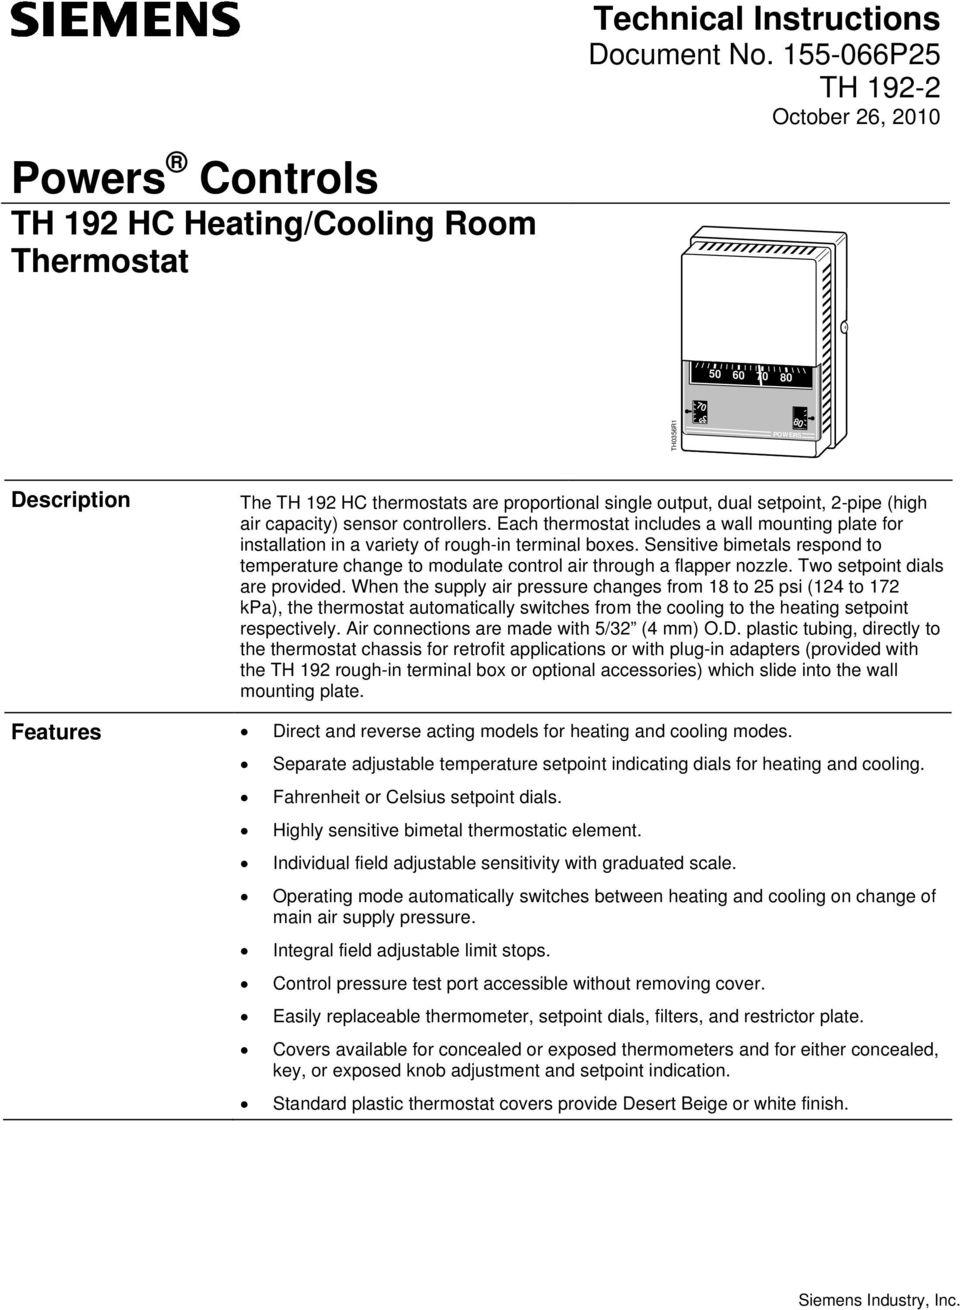 Each thermostat includes a wall mounting plate for installation in a variety of rough-in terminal boxes.